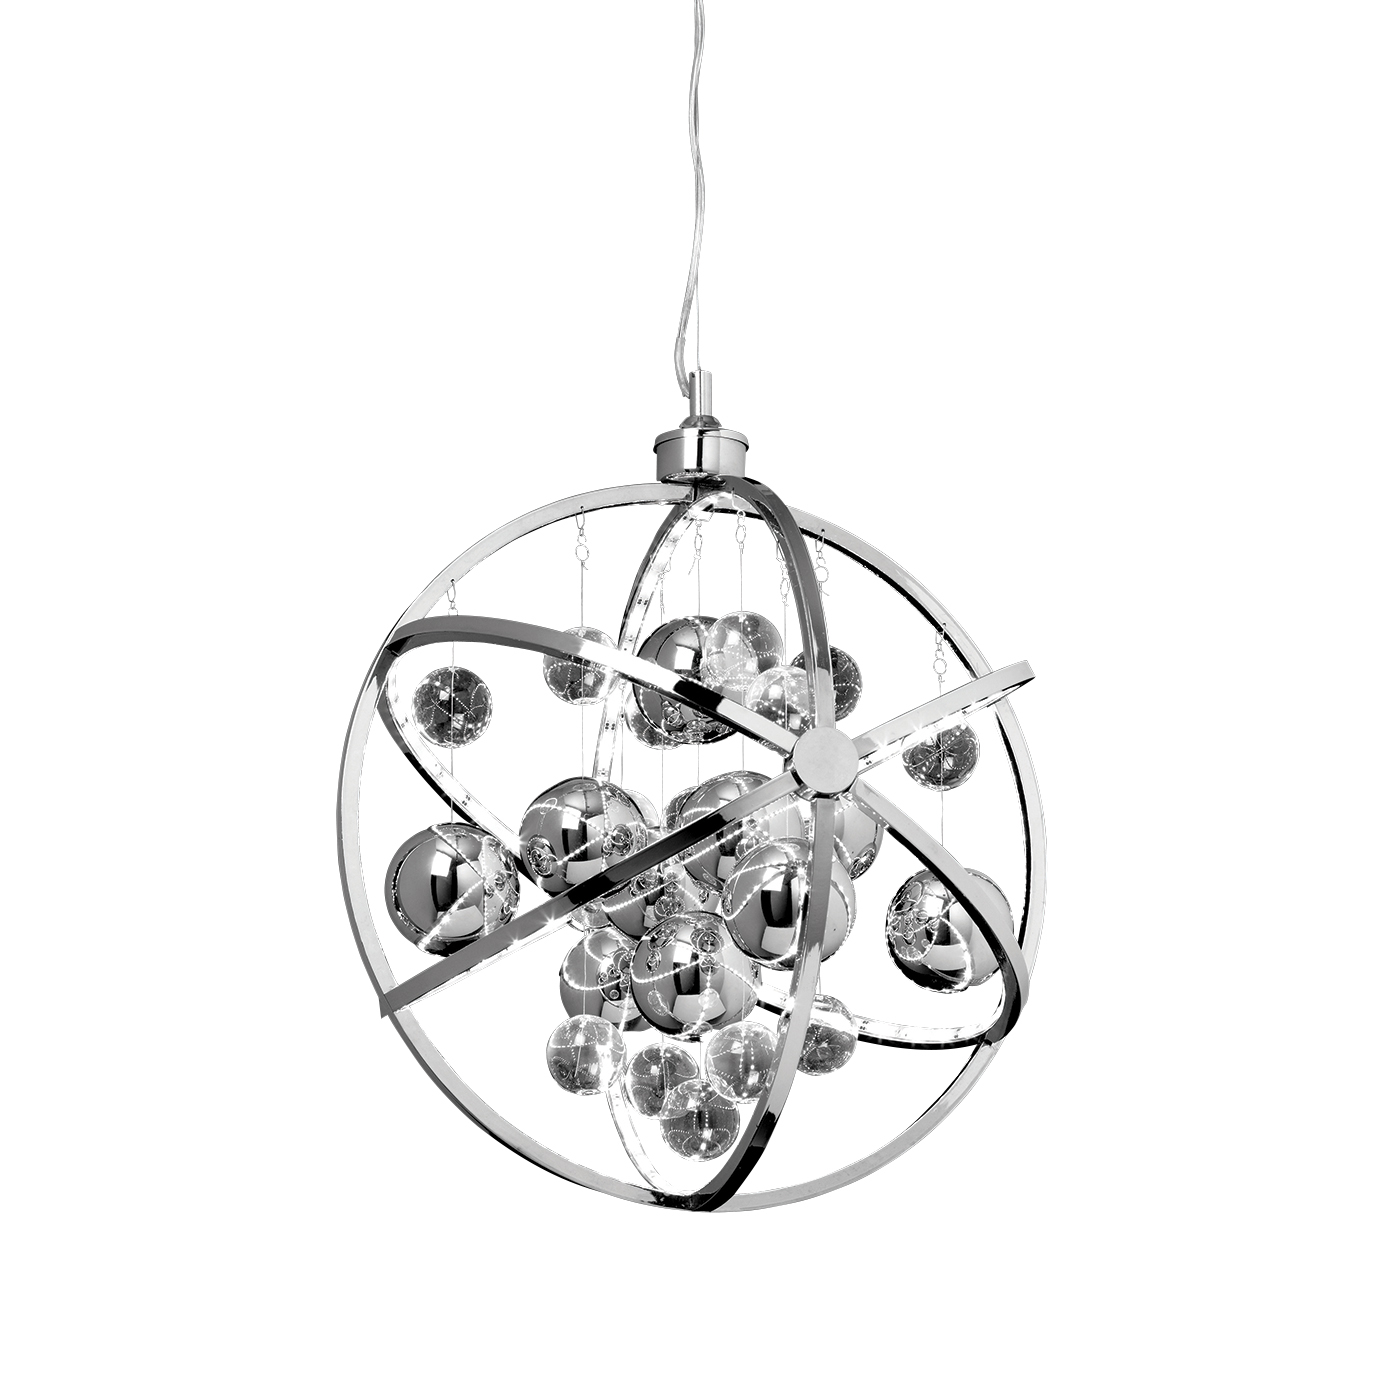 Endon Muni 480mm pendant 10W Chrome effect plate with clear & chrome glass balls